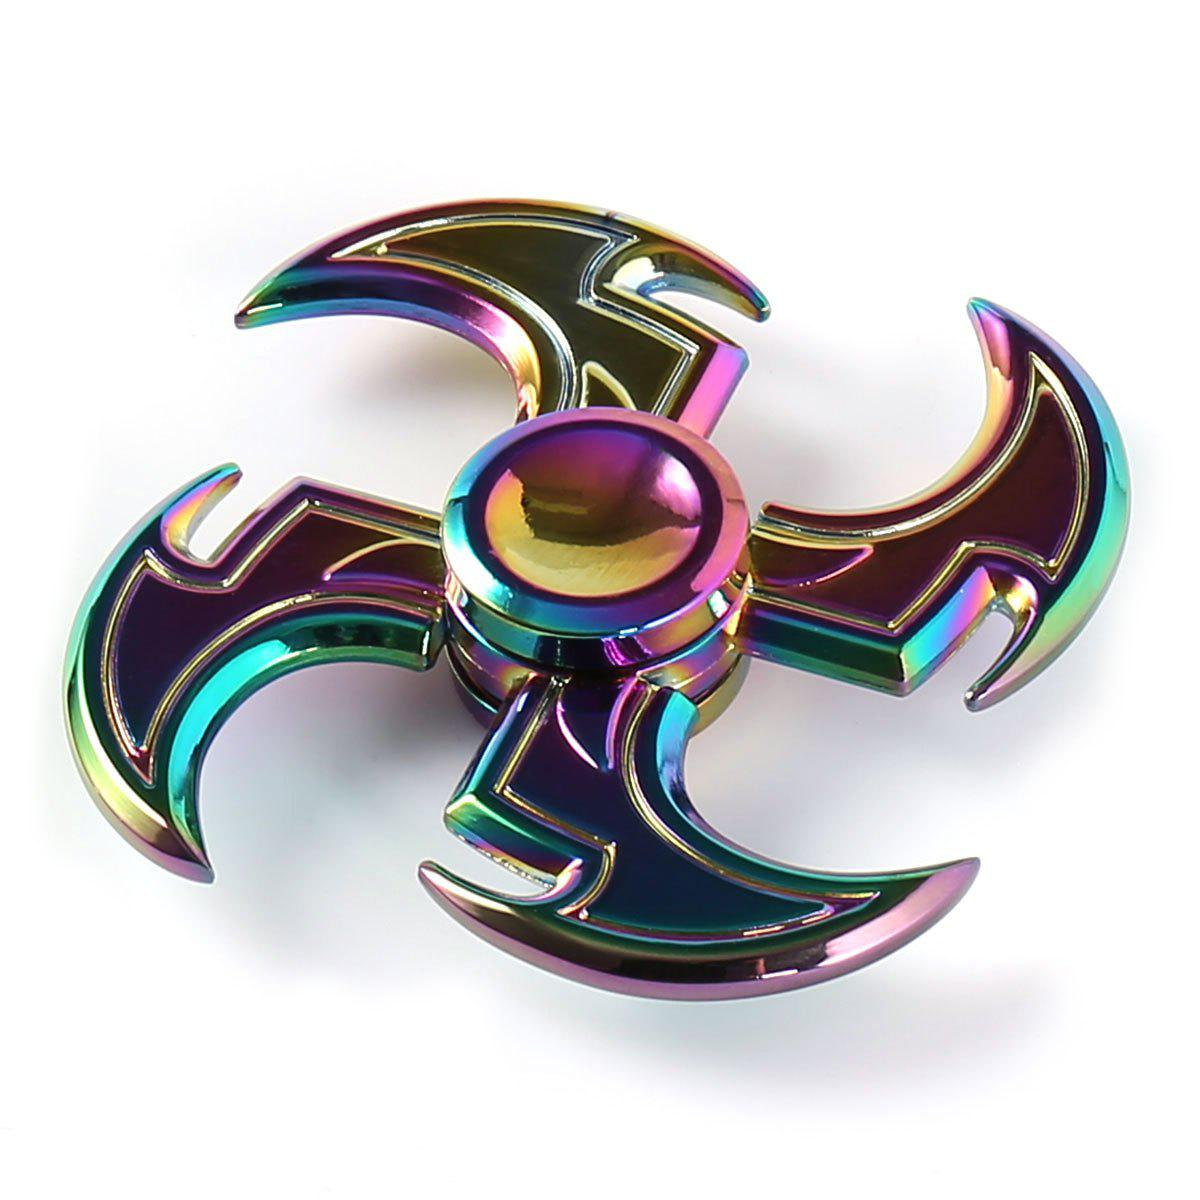 29 Off 2018 Axe Shape Rainbow Fidget Toy Hand Spinner